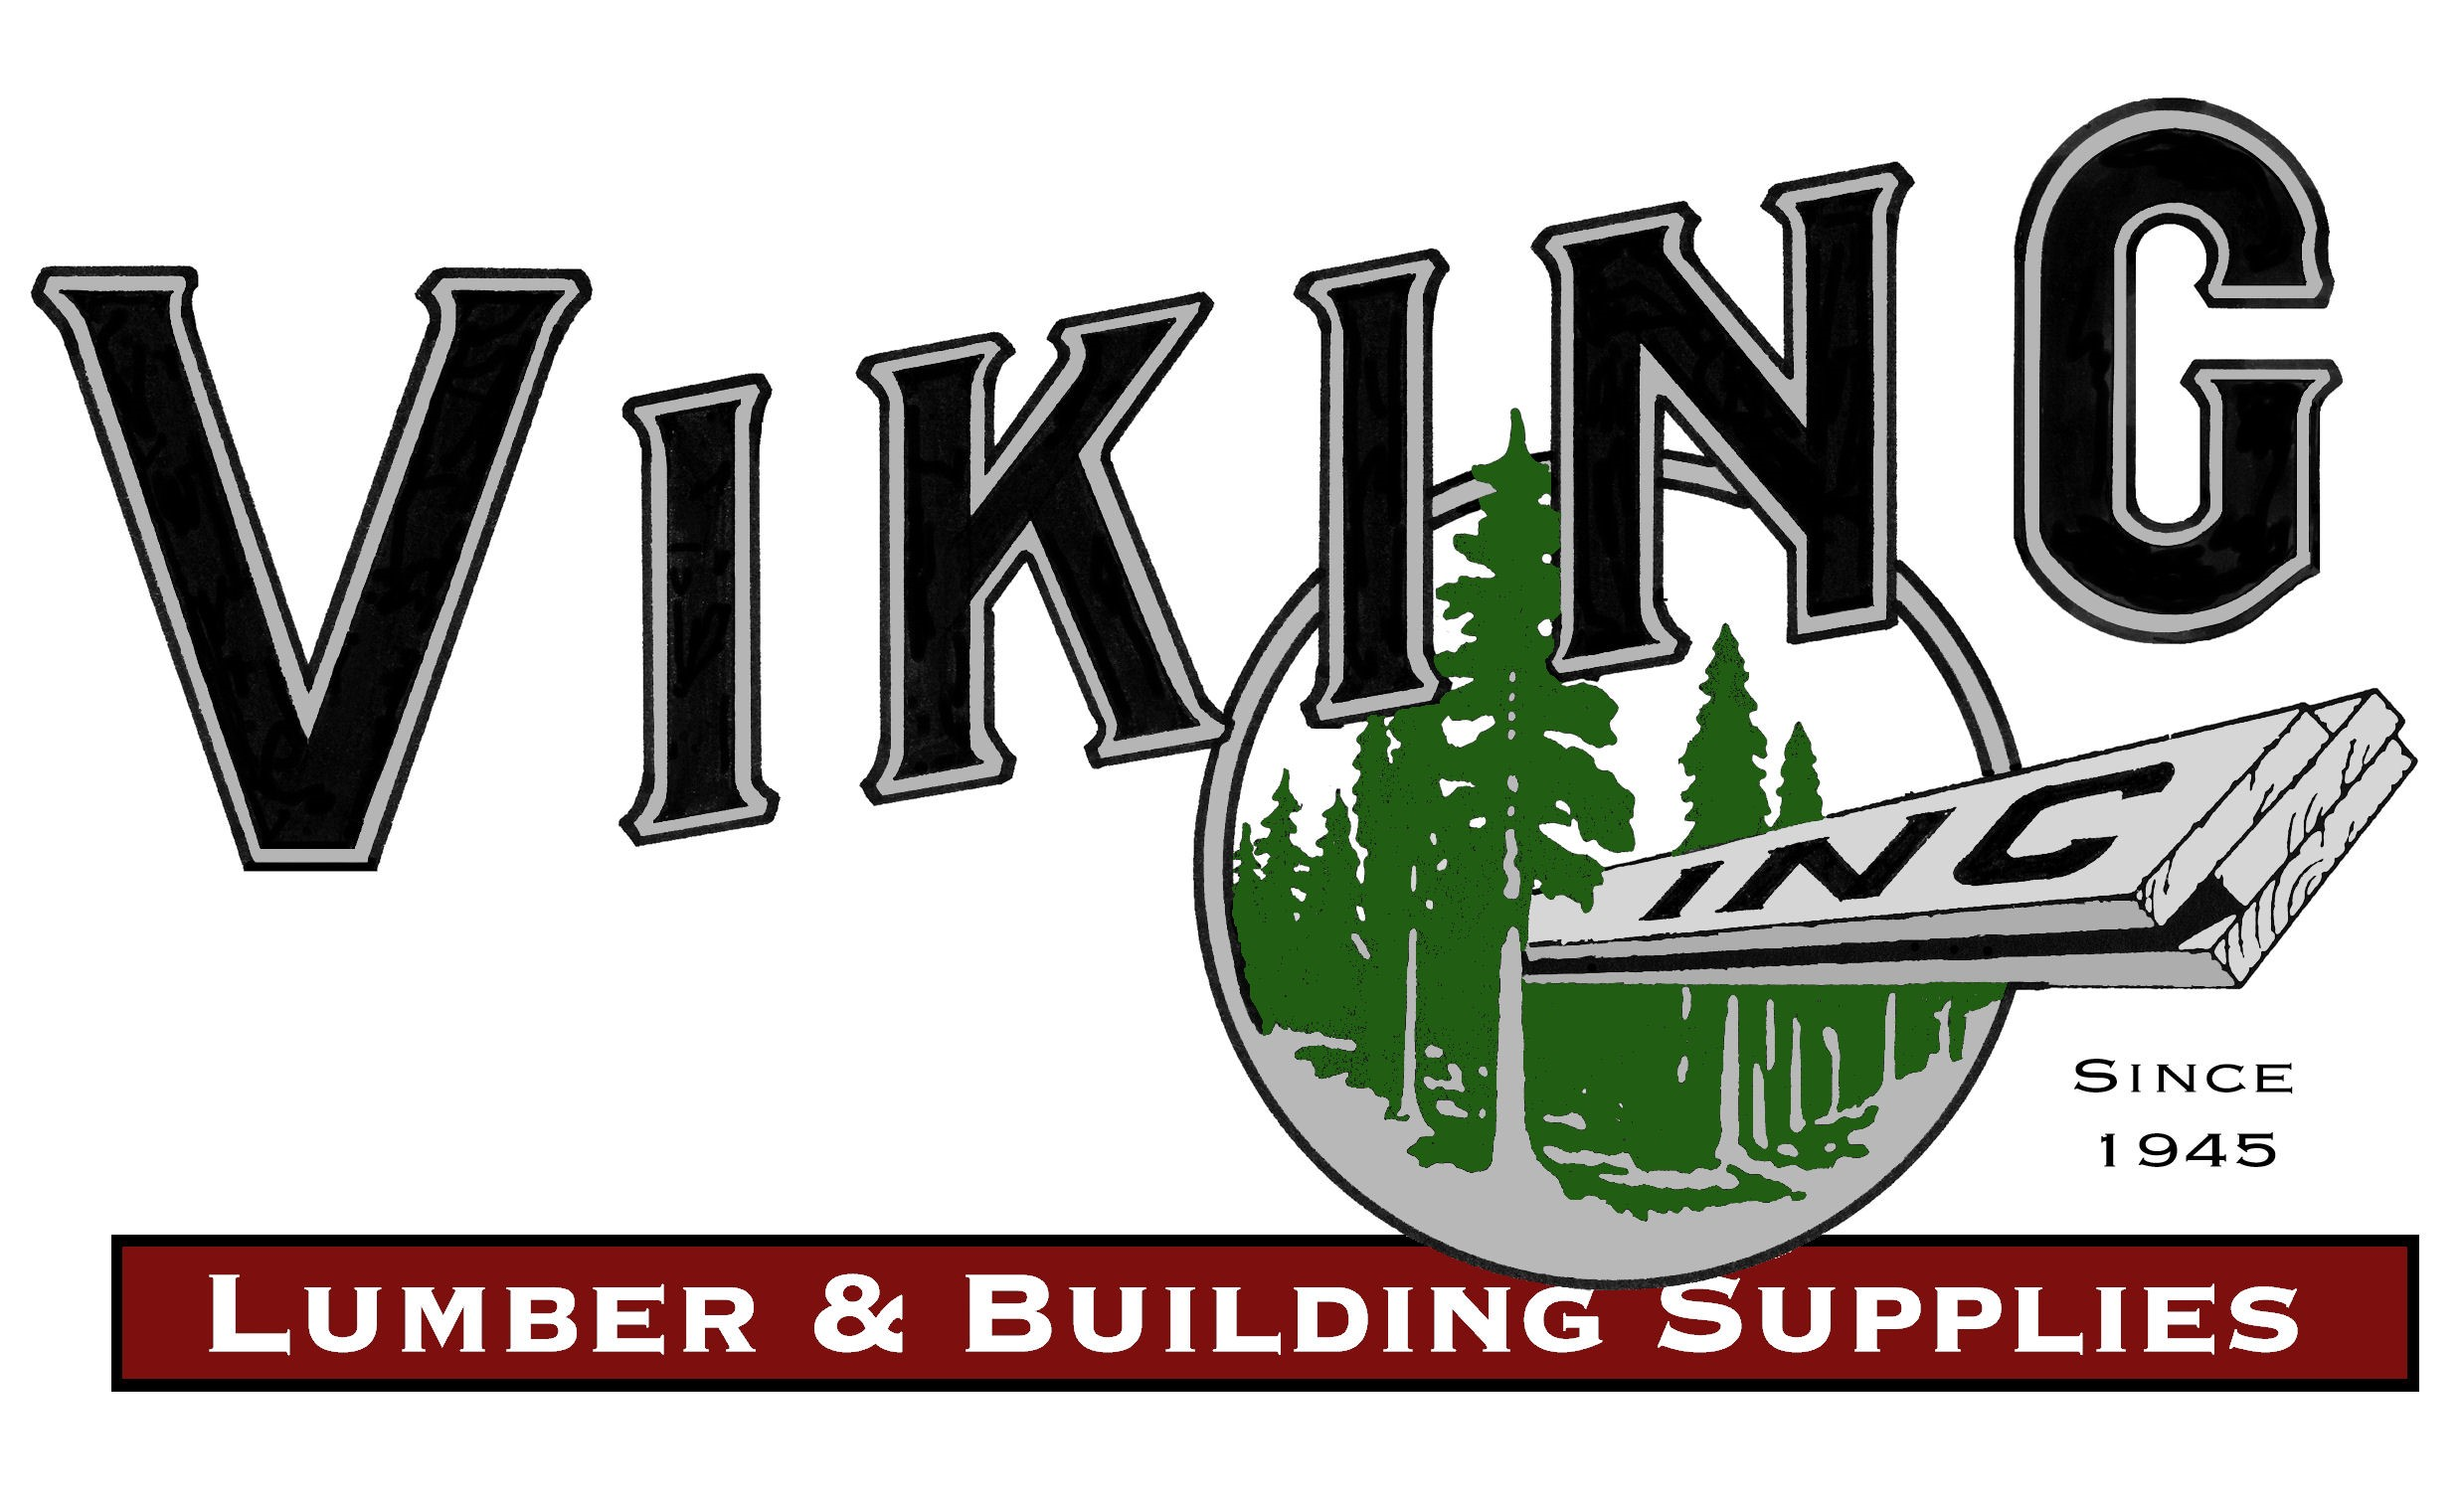 Viking Inc